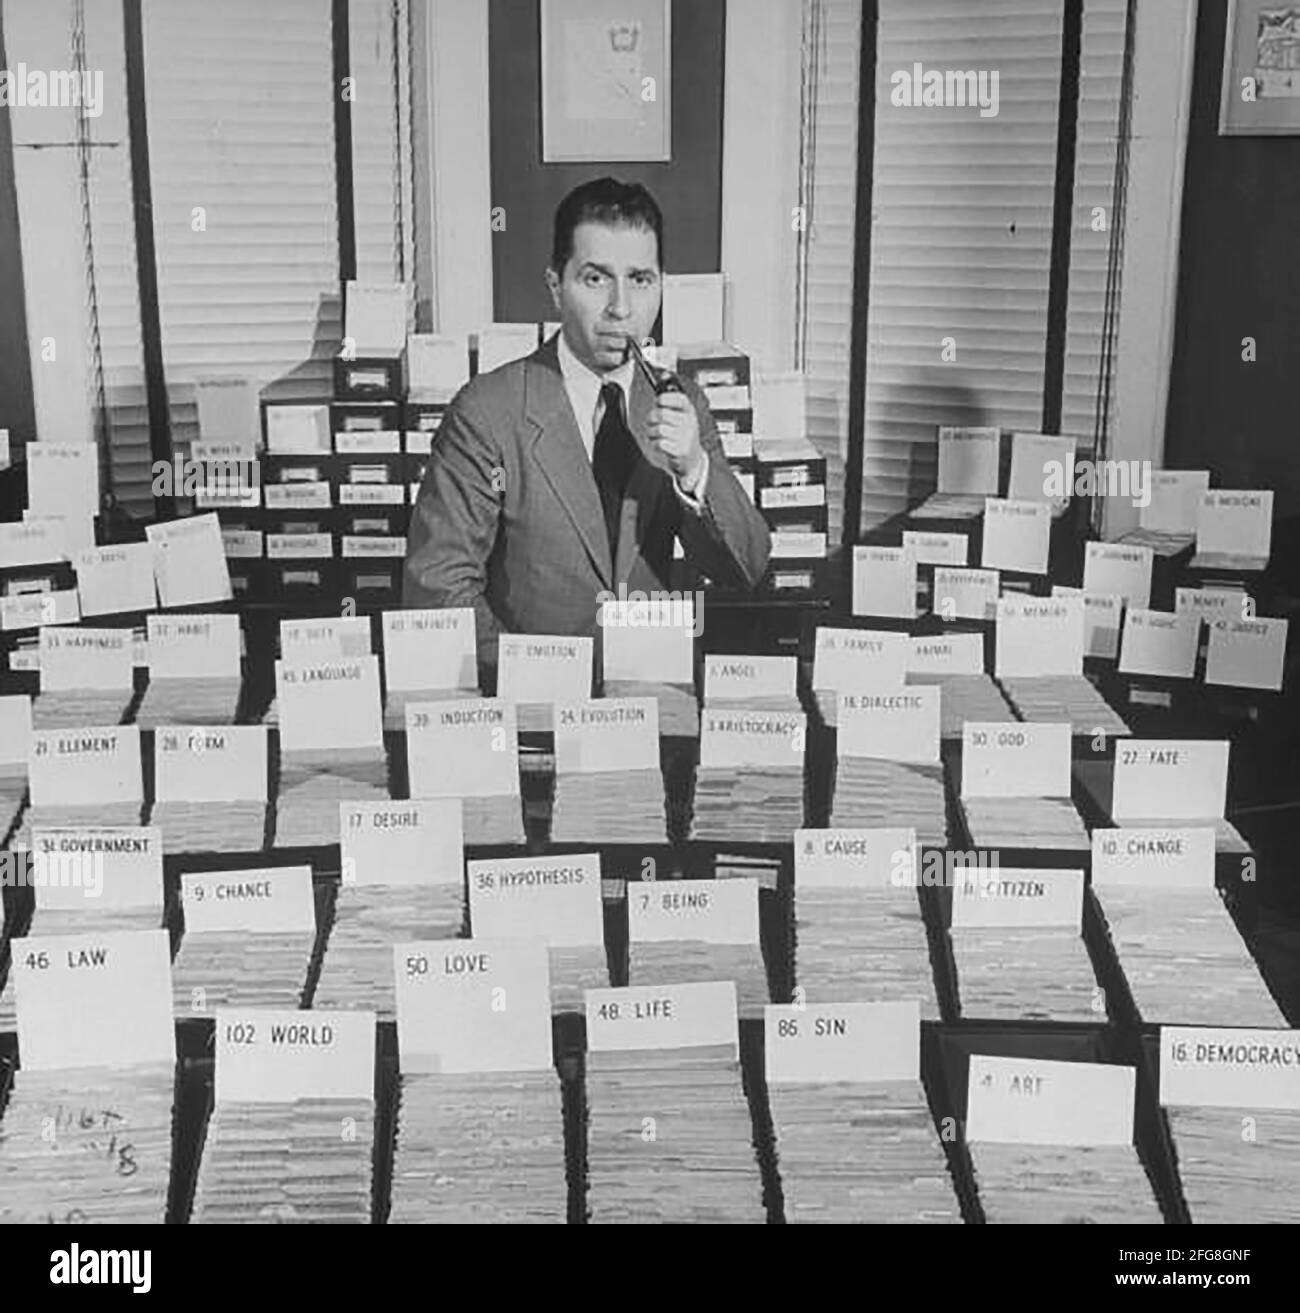 Mortimer J. Adler surrounded by his great ideas.  (Photo by George Skadding/The LIFE Picture Collection via Getty Images) Stock Photo